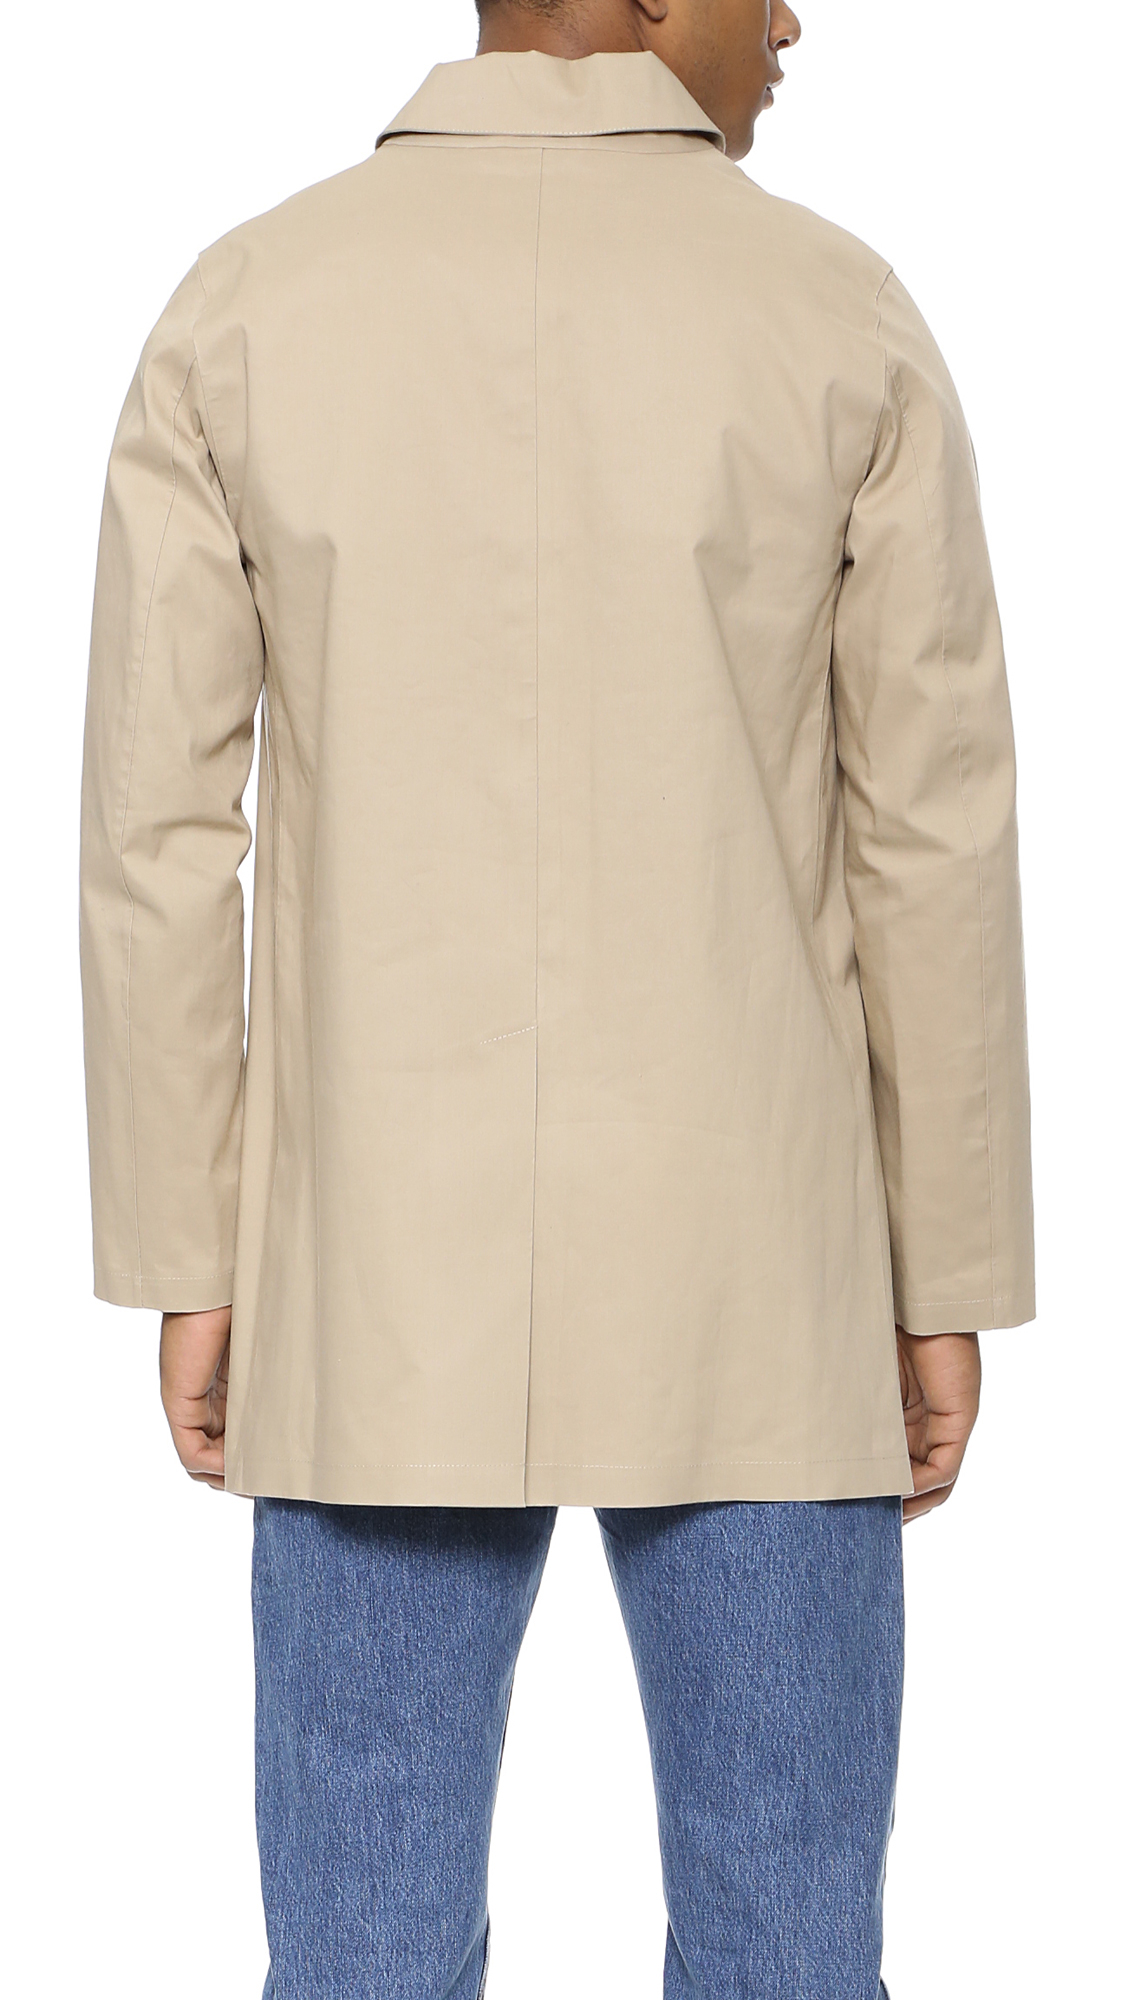 Lyst - Mackintosh Dunoon Bonded Raincoat in Natural for Men